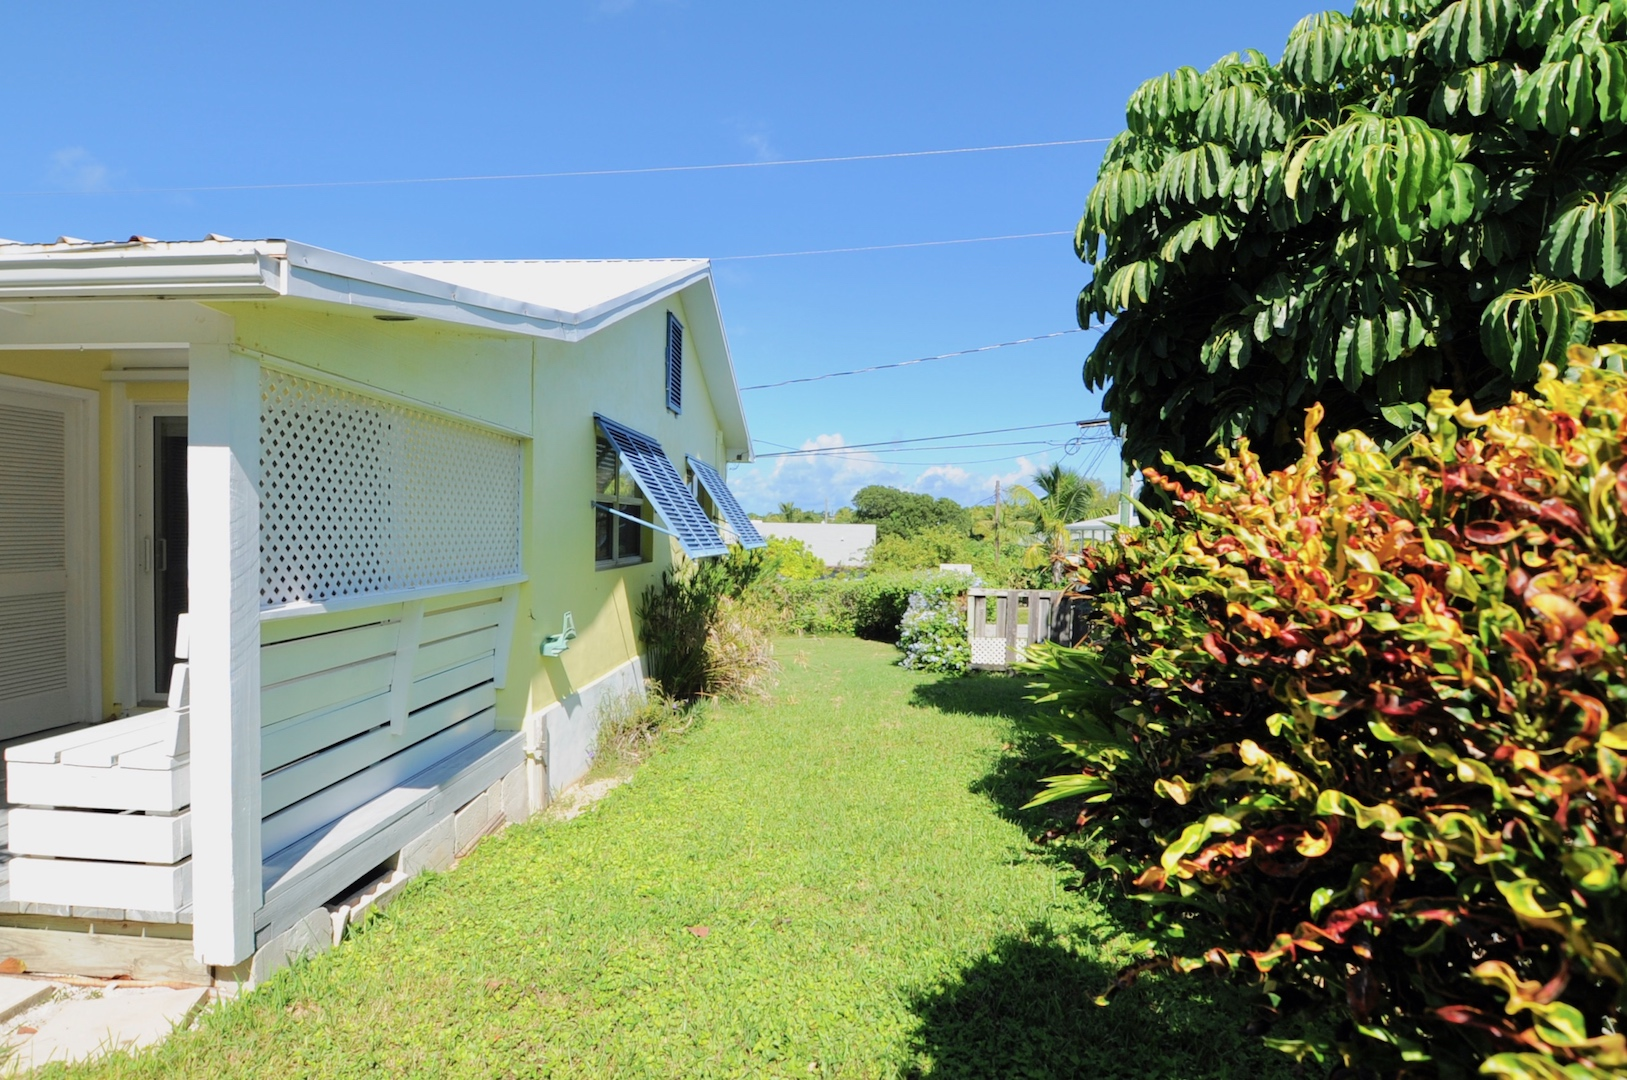 Home for sale in Man-O-War Cay Abaco Bahamas just minutes from the beach